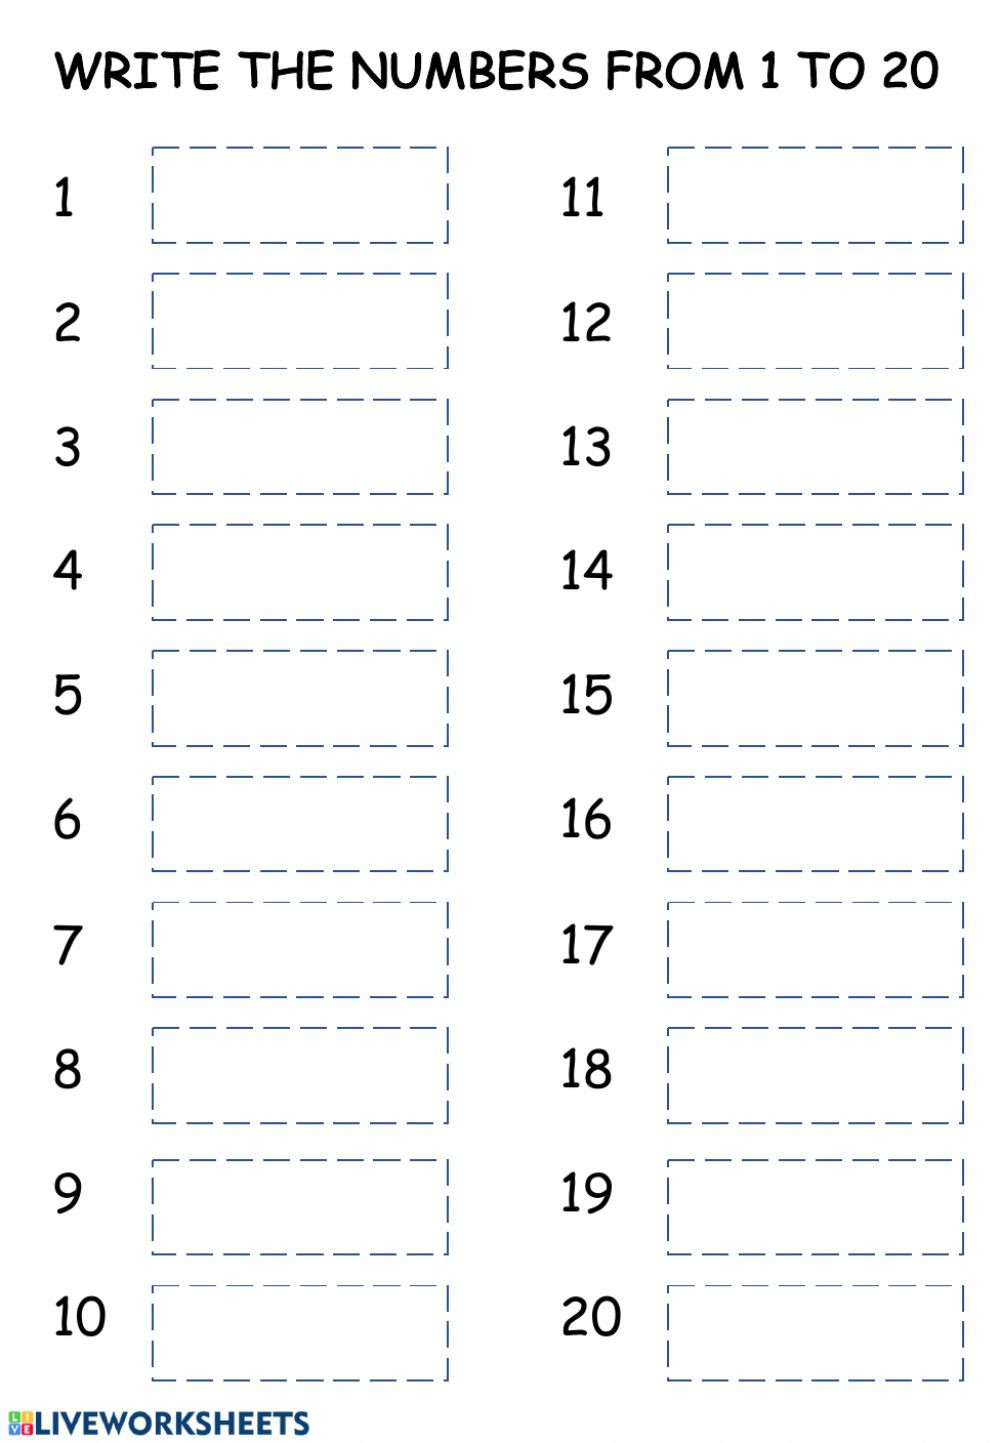 Number Writing Worksheets 1 20 Writing Numbers 1 20 Worksheet